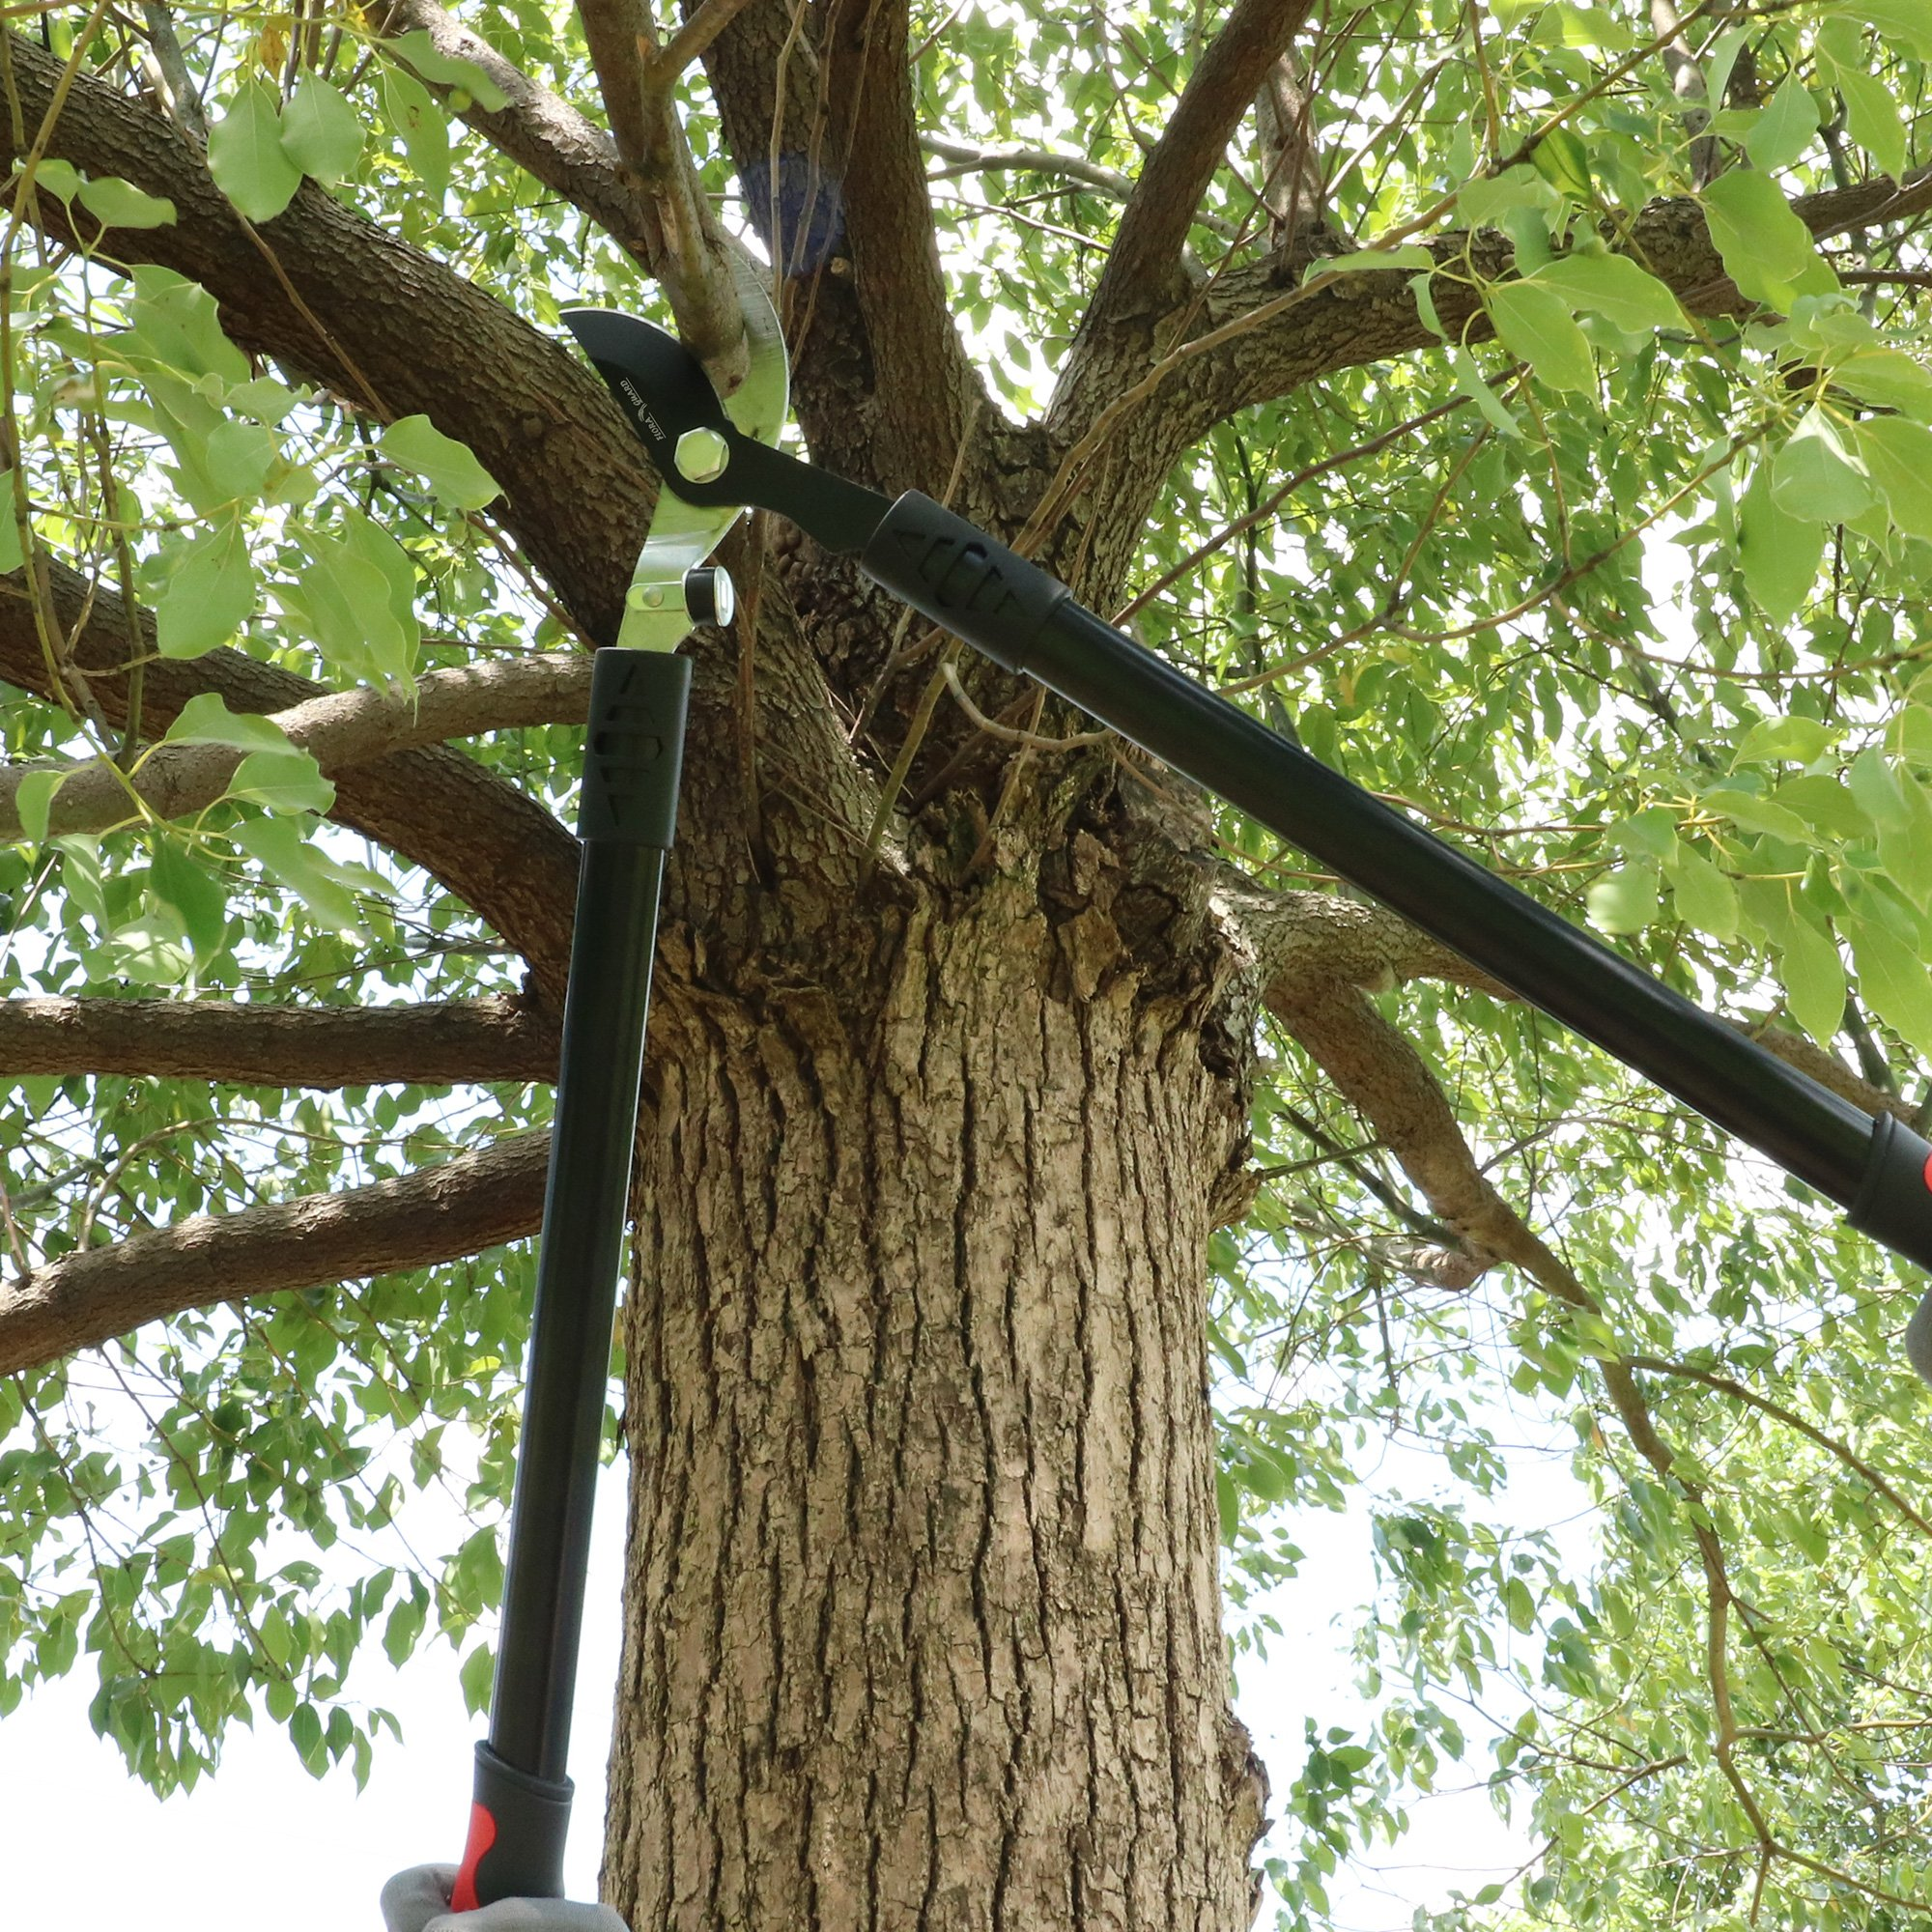 FLORA GUARD 27.5-inch Bypass Lopper, Makes Clean Professional Cuts, 1.25-Inch Cutting Capacity, Tree Trimmer and Branch Cutter Featuring Sturdy by FLORA GUARD (Image #7)